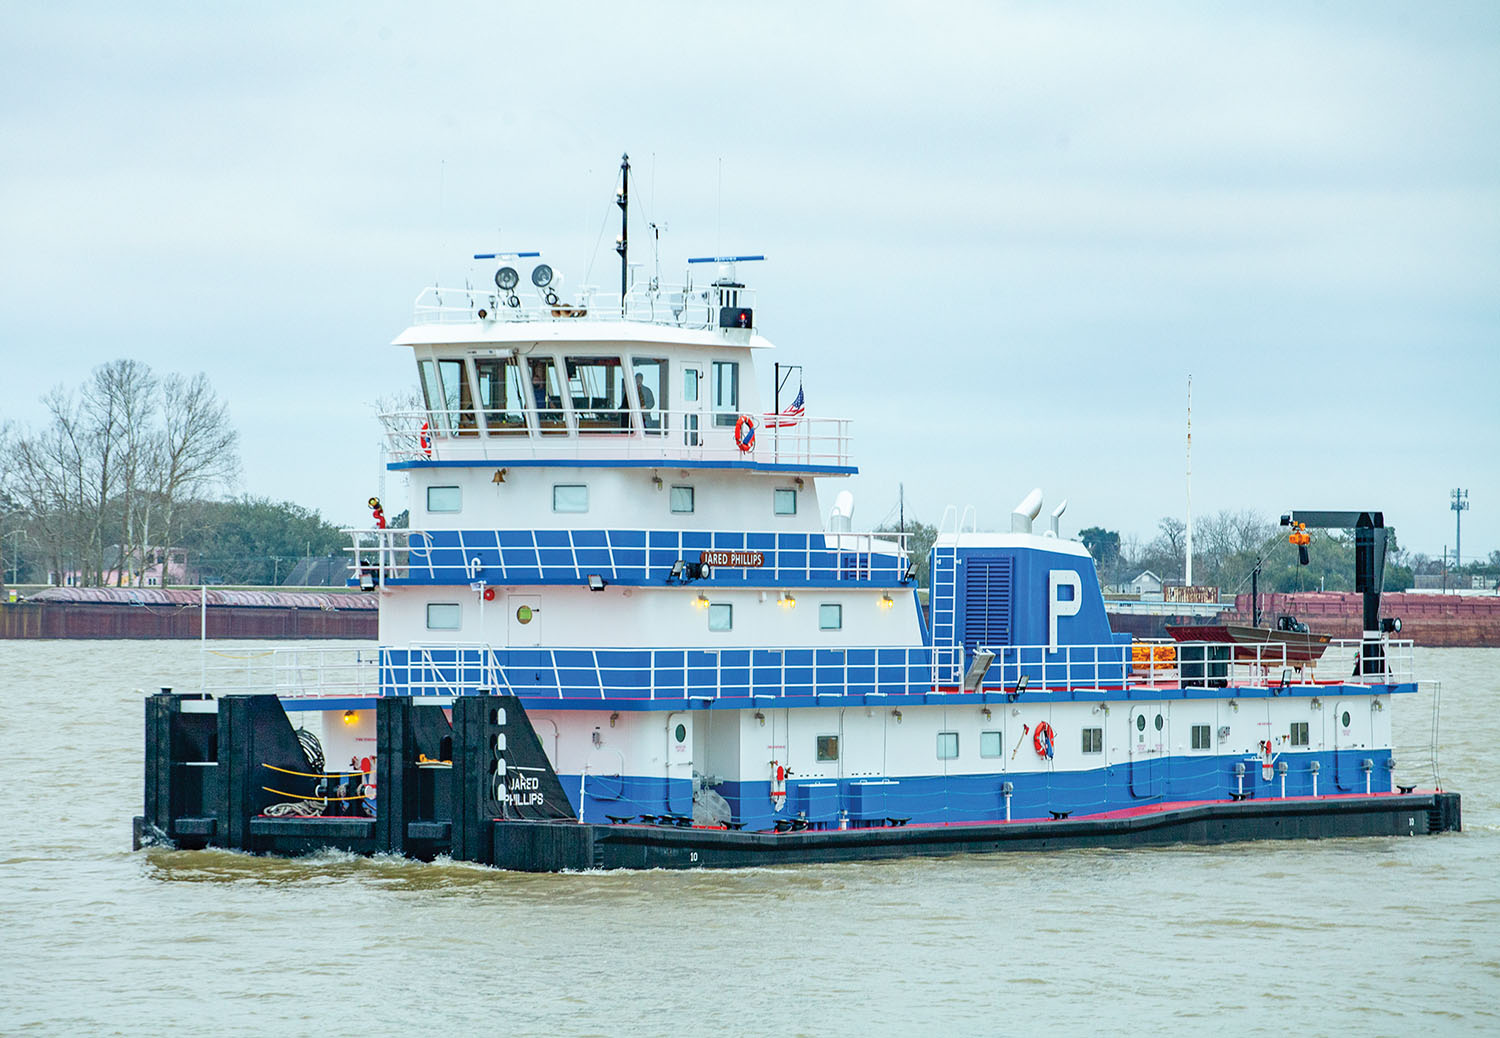 Built by FMT Shipyard, the mv. Jared Phillips is named for the director of business operations for Parker Towing. (Photo by Frank McCormack)